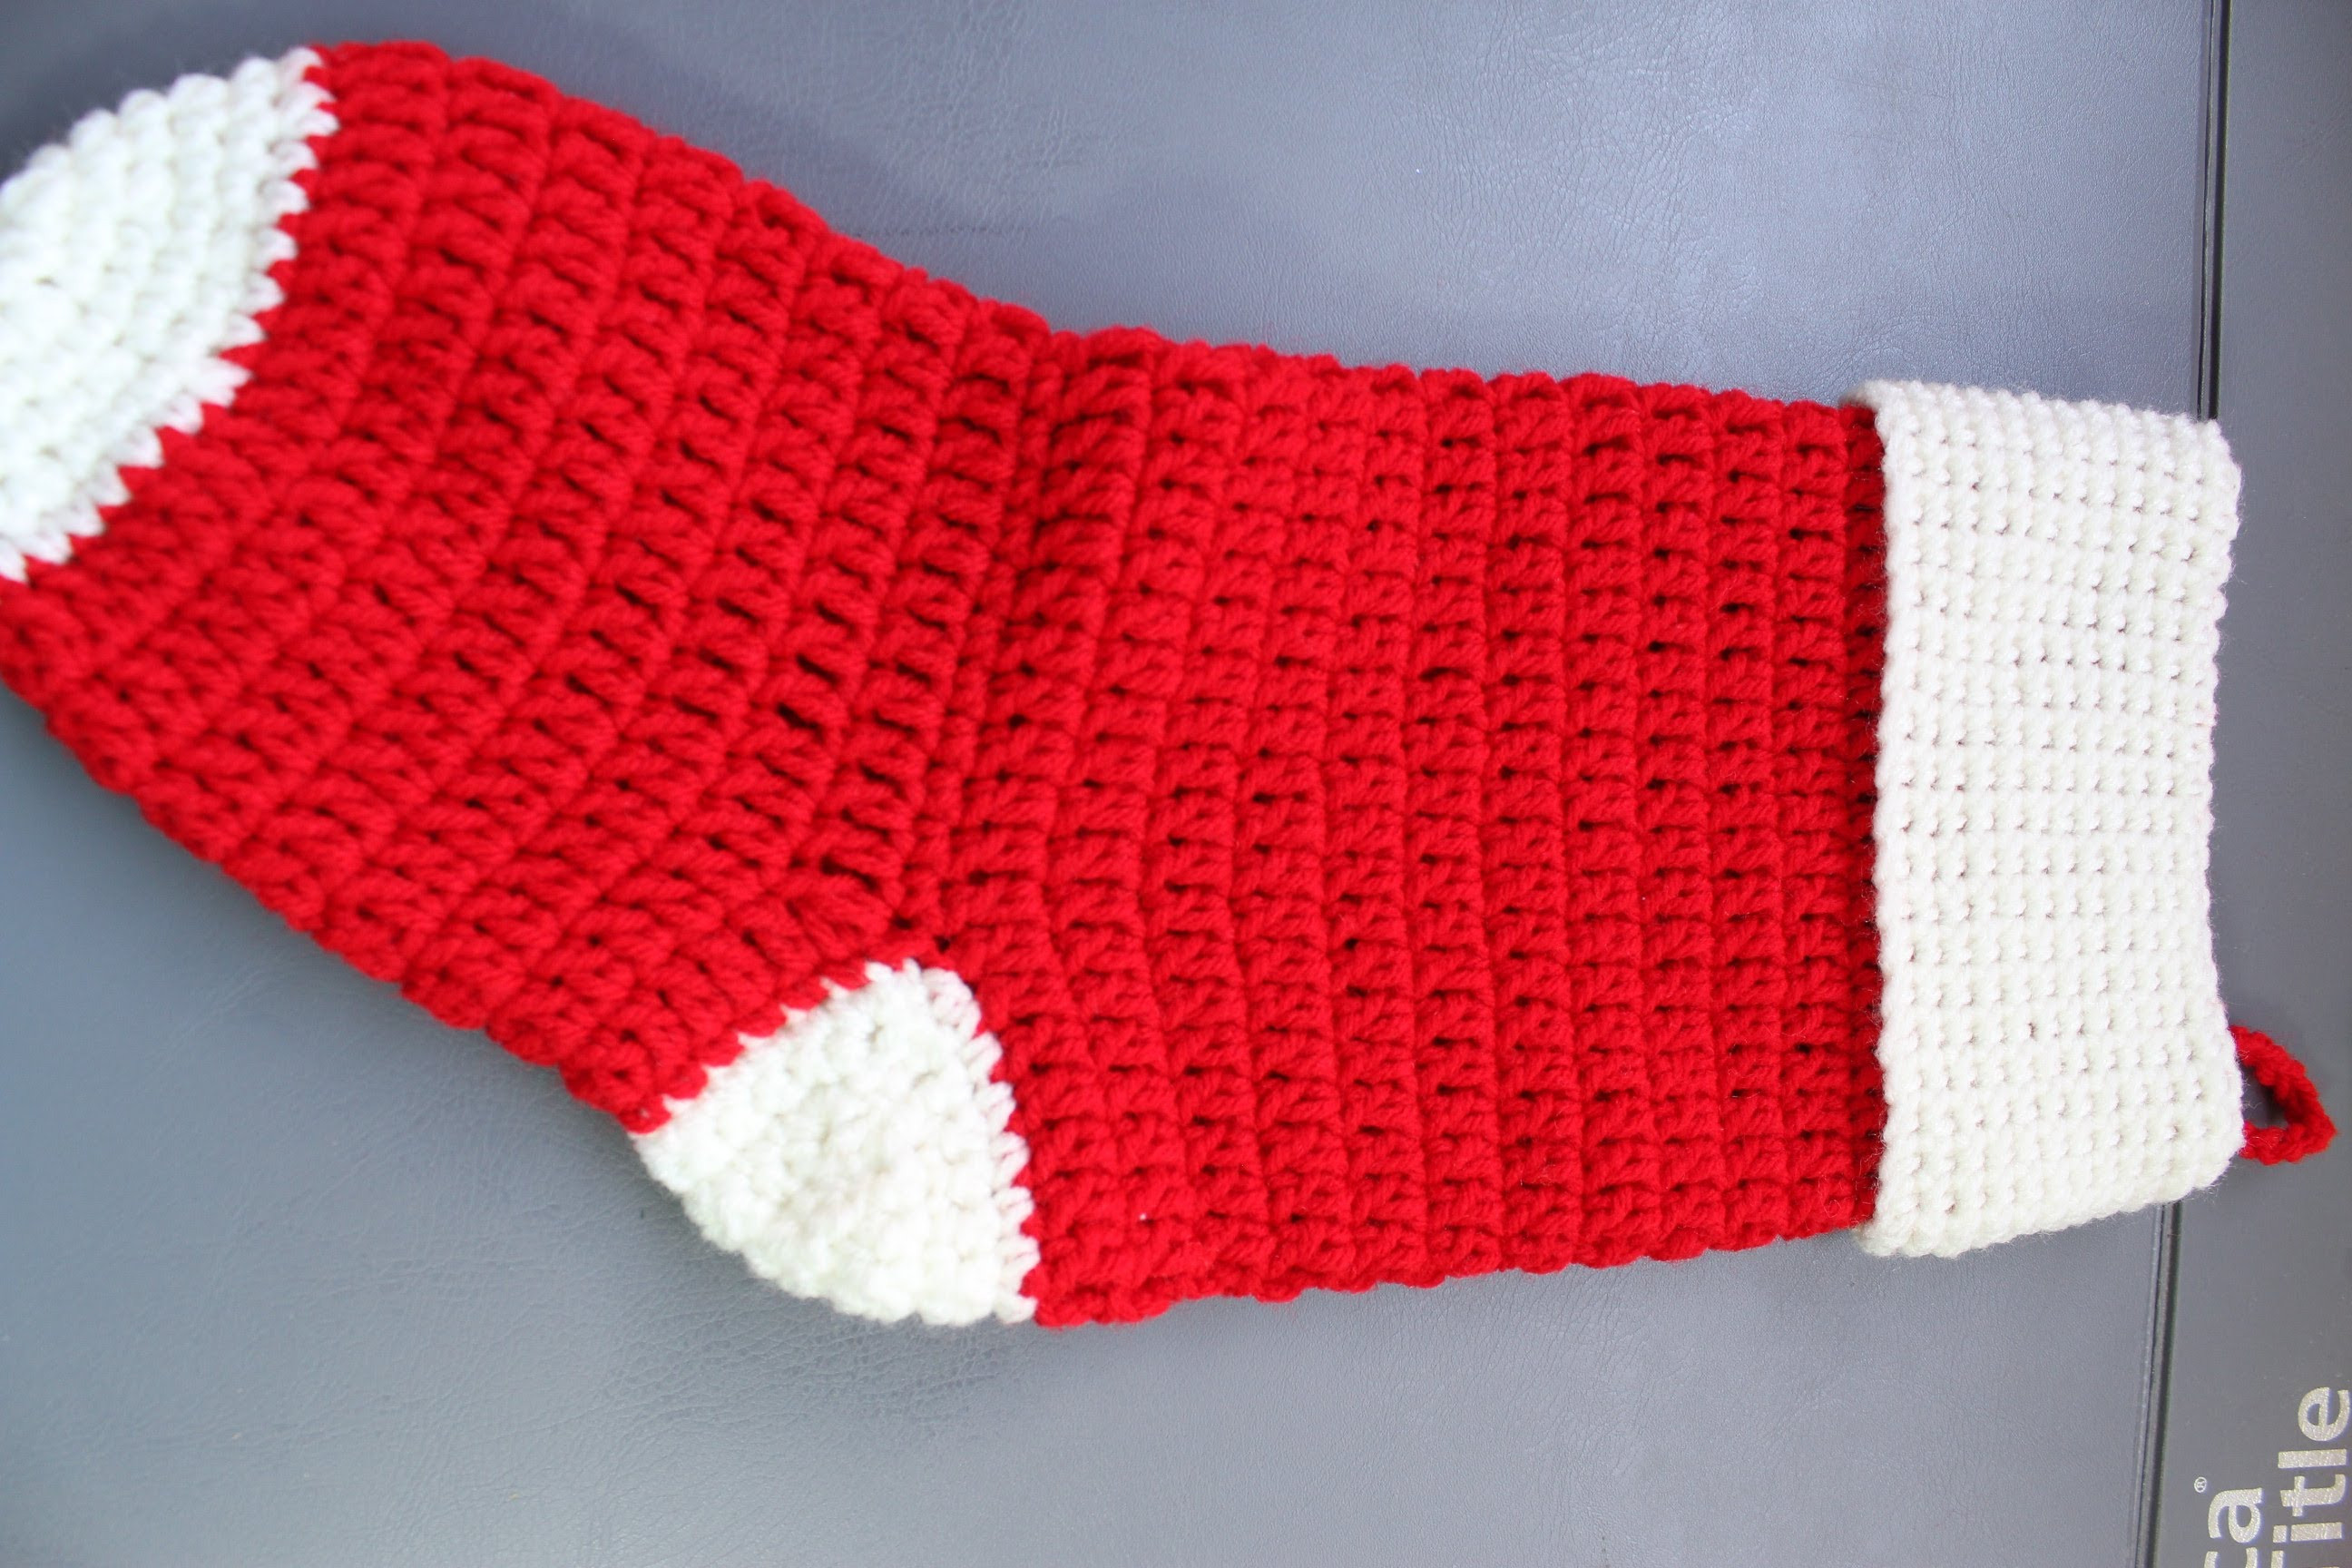 Crochet Stocking Unique 40 All Free Crochet Christmas Stocking Patterns Patterns Hub Of Unique 48 Models Crochet Stocking